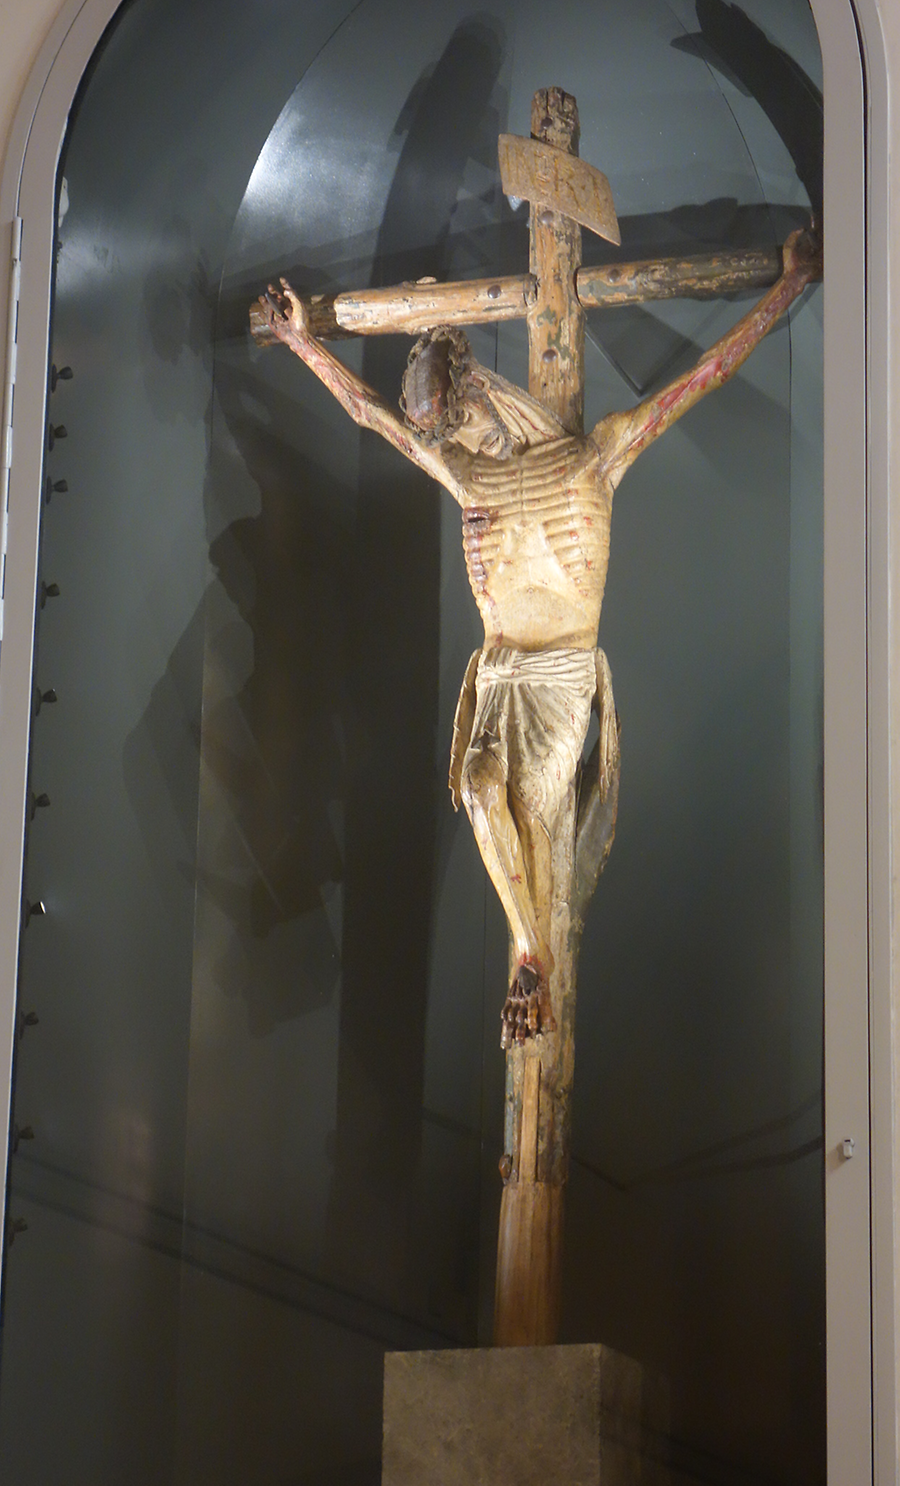 Sculpture of Christ in the Cathedral, Photo: U. Maurer, 2015